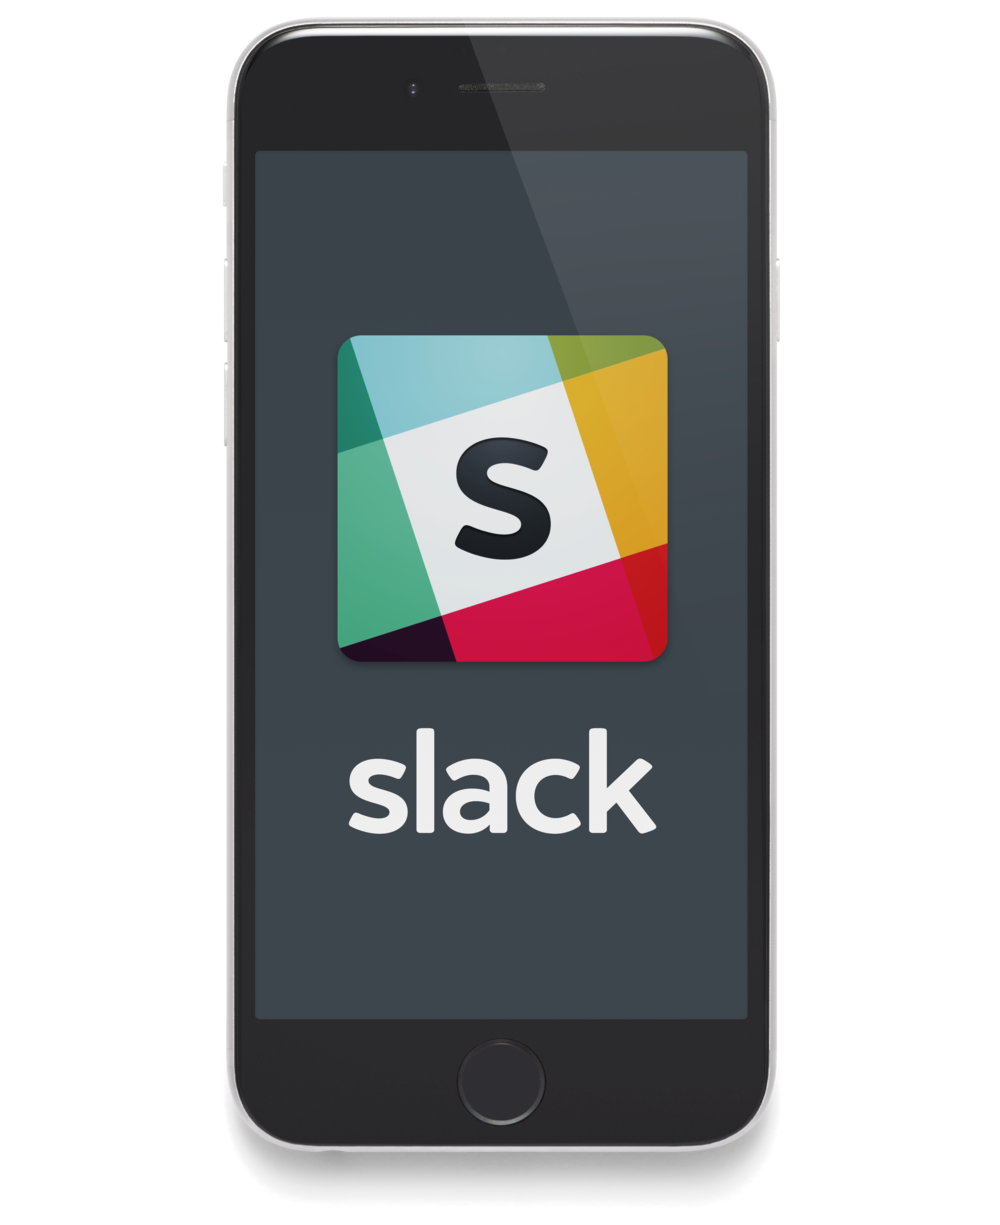 iPhone-Slack.png